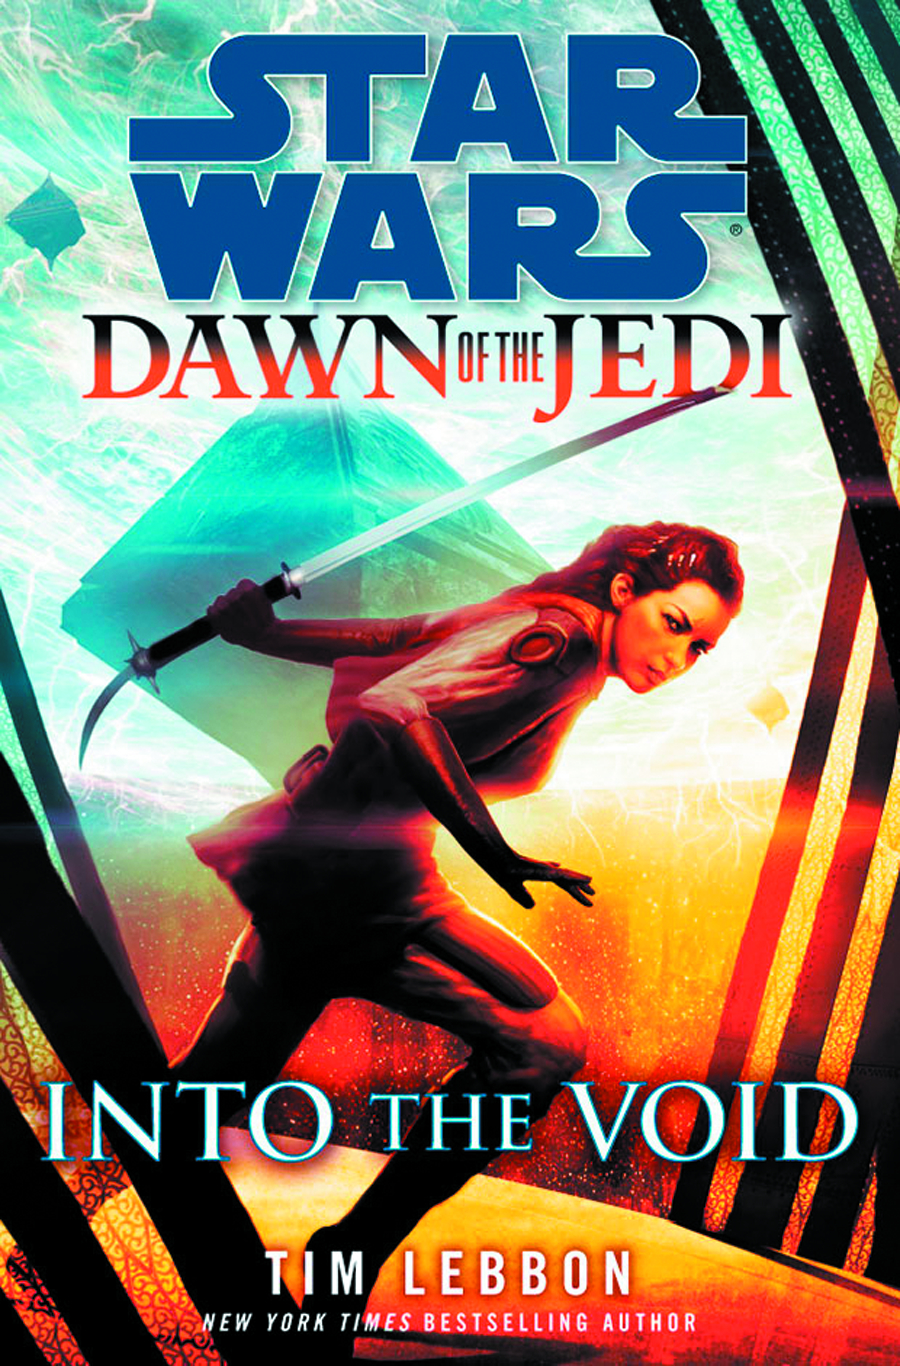 STAR WARS DAWN O/T JEDI HC INTO VOID